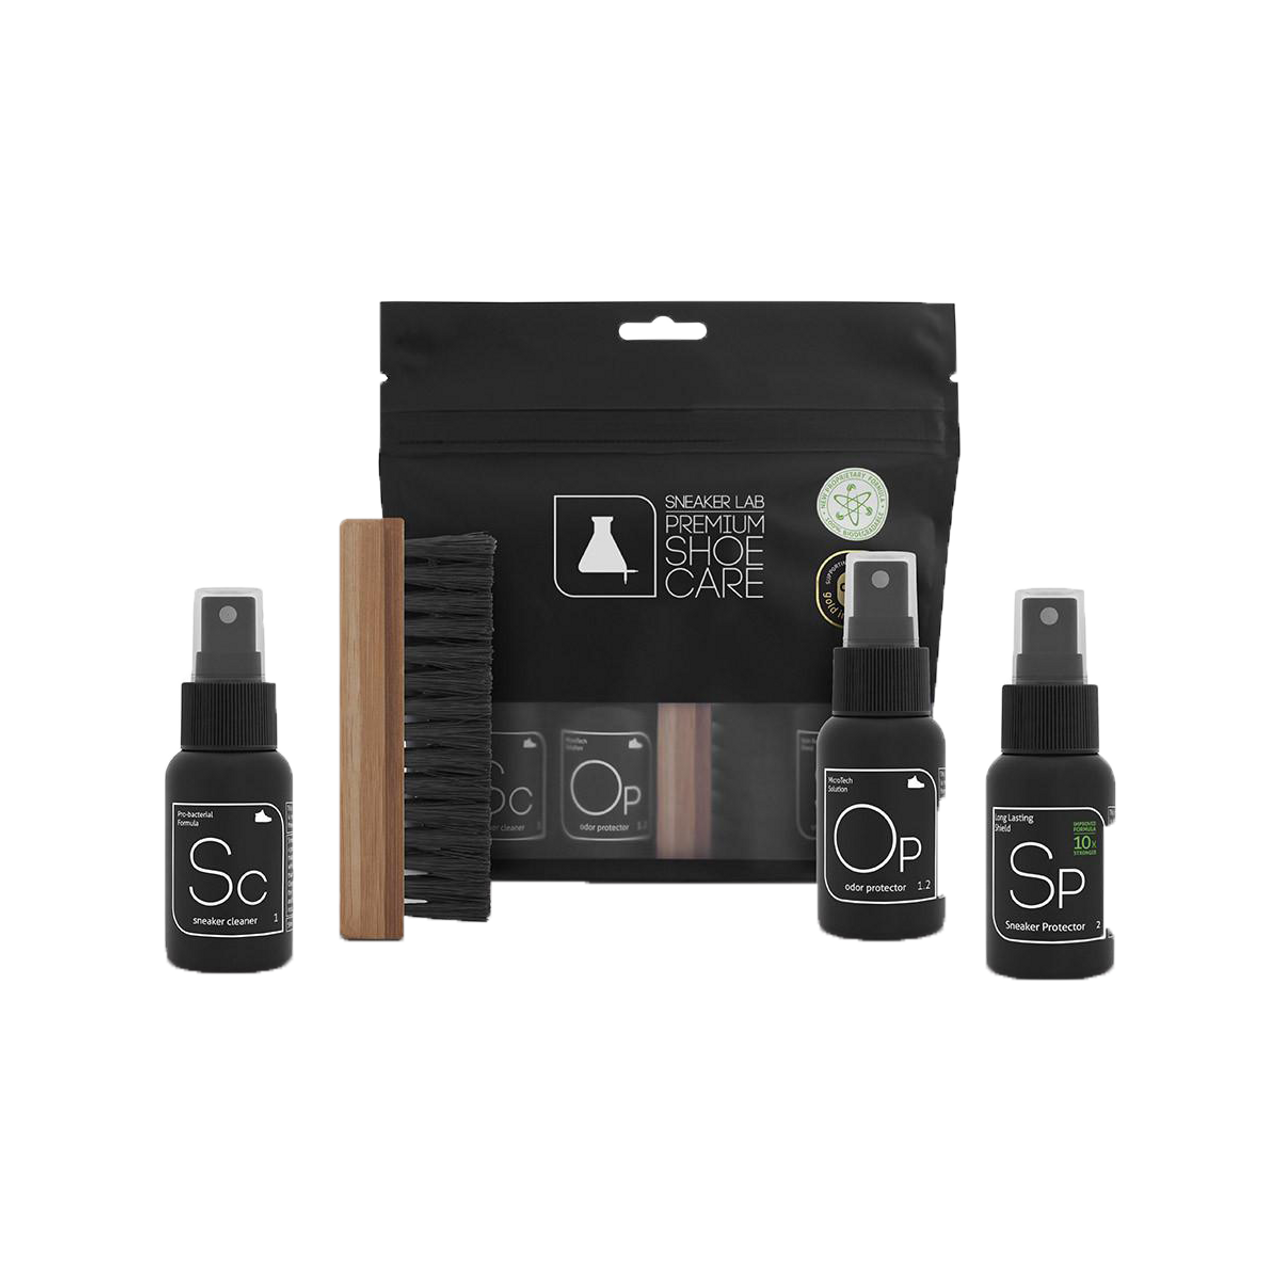 Sneaker Lab Premium Shoe Care Kit